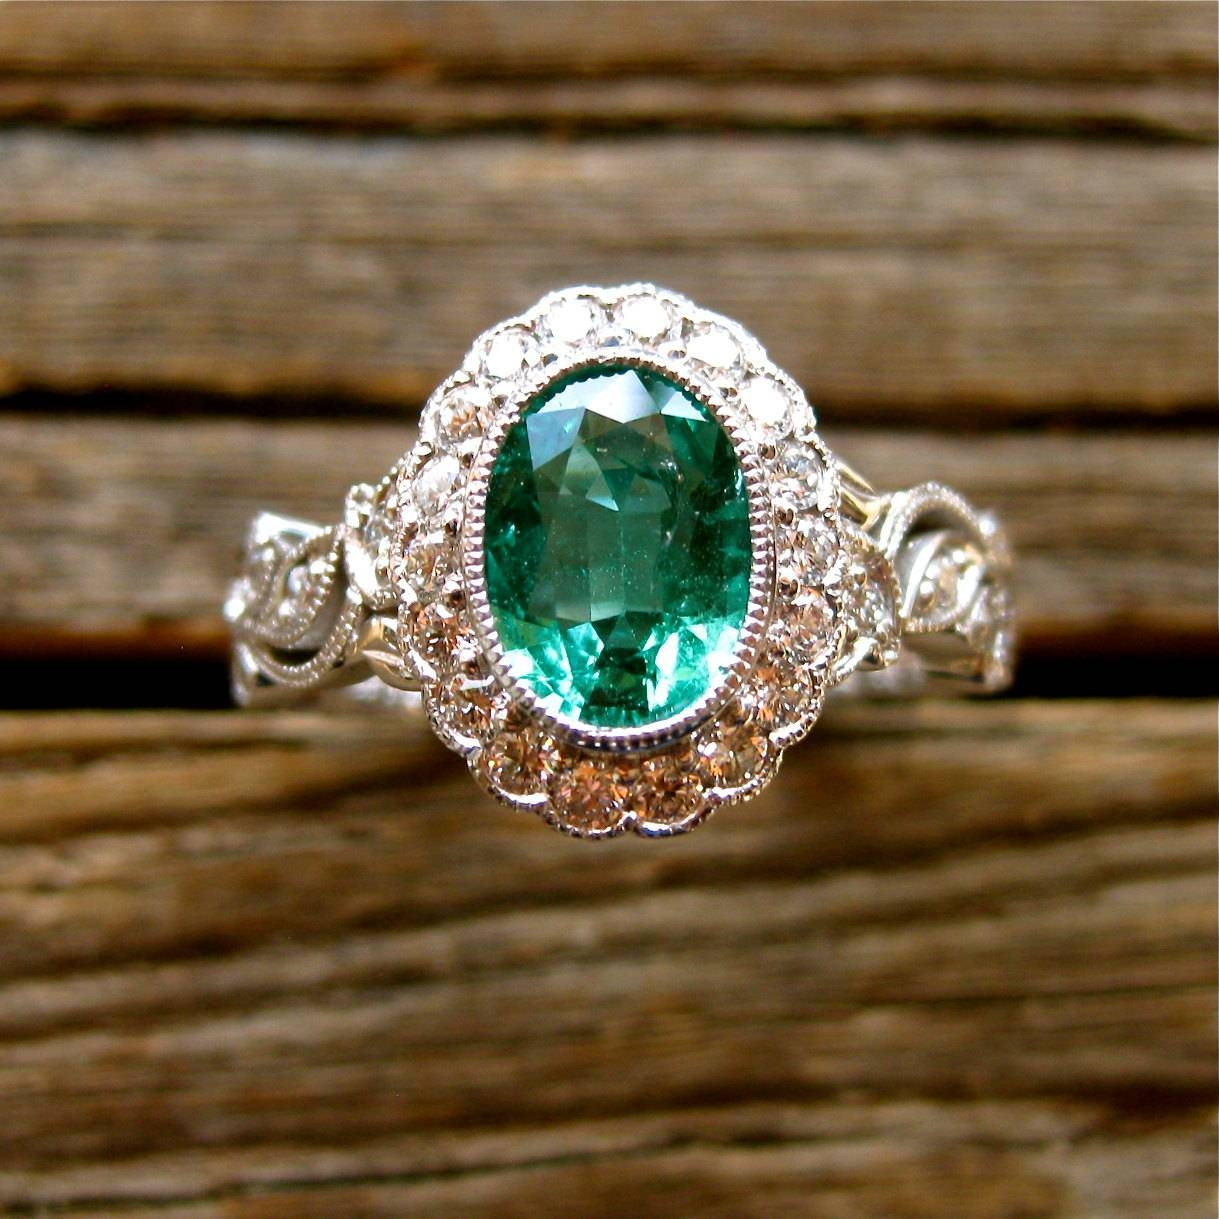 Oval Green Emerald Engagement Ring In 14K White Gold With Regarding Oval Emerald Engagement Rings (View 7 of 15)